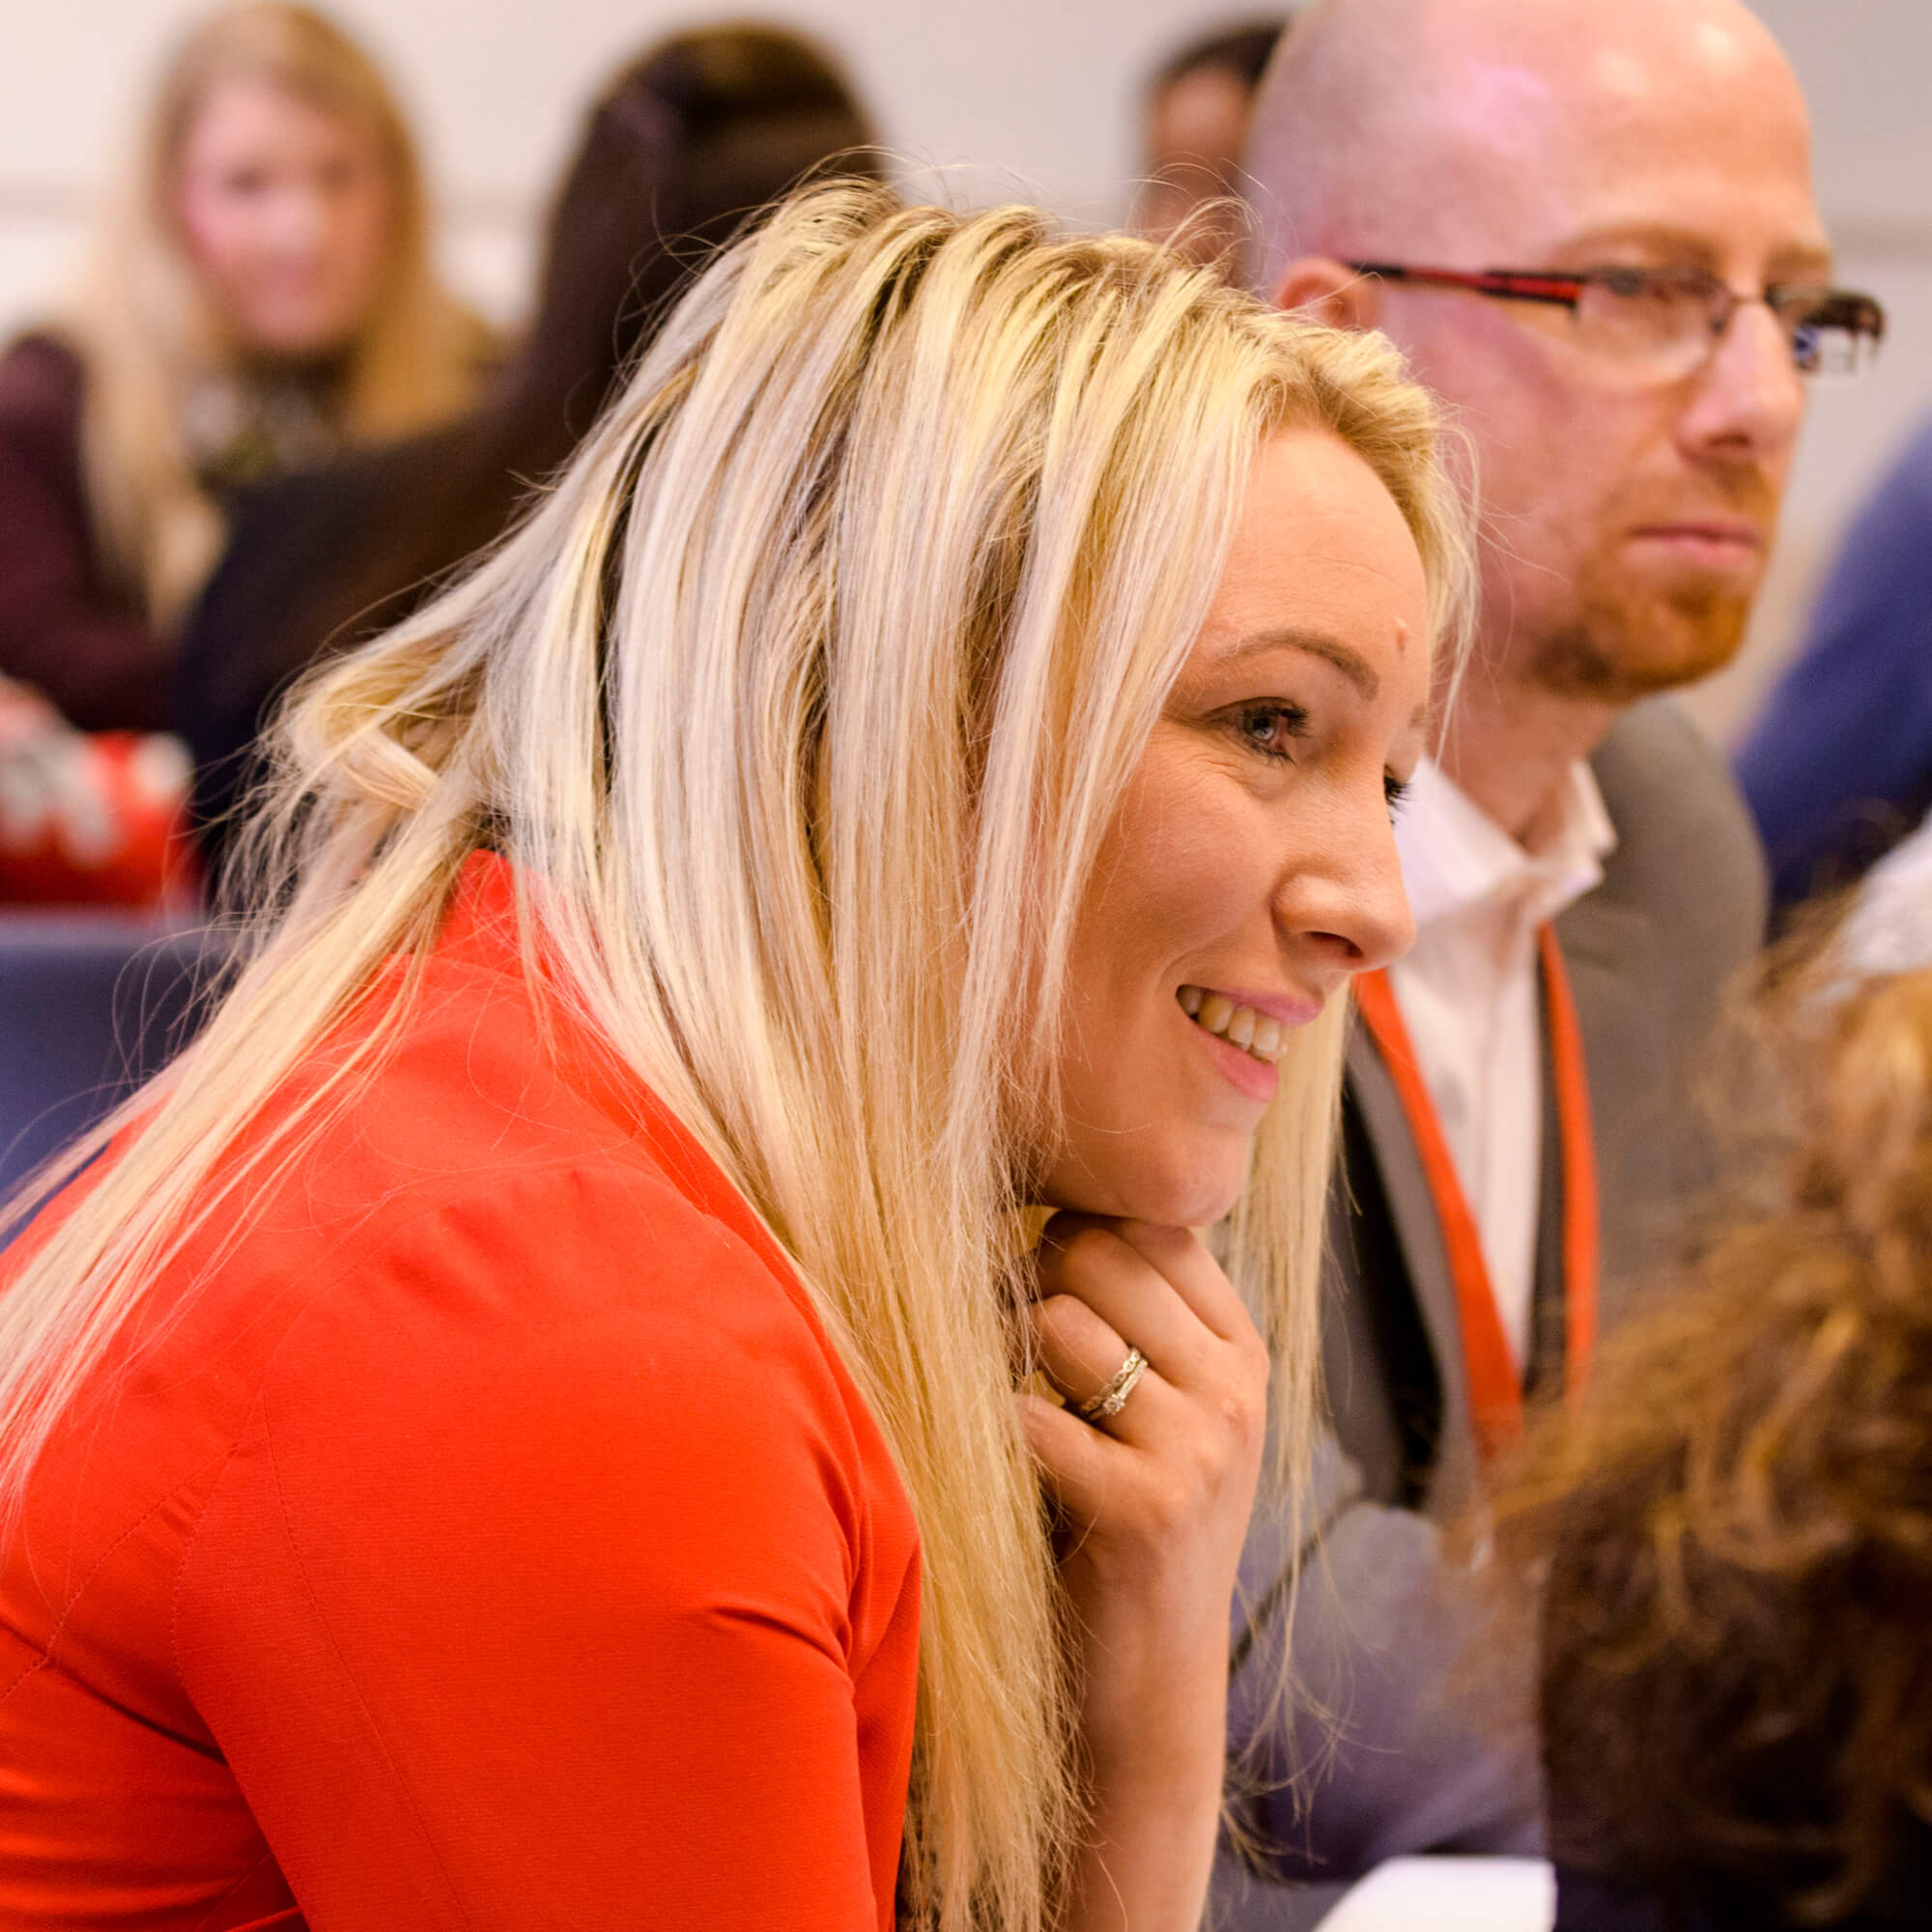 Leanne Drennan with colleagues at a conference